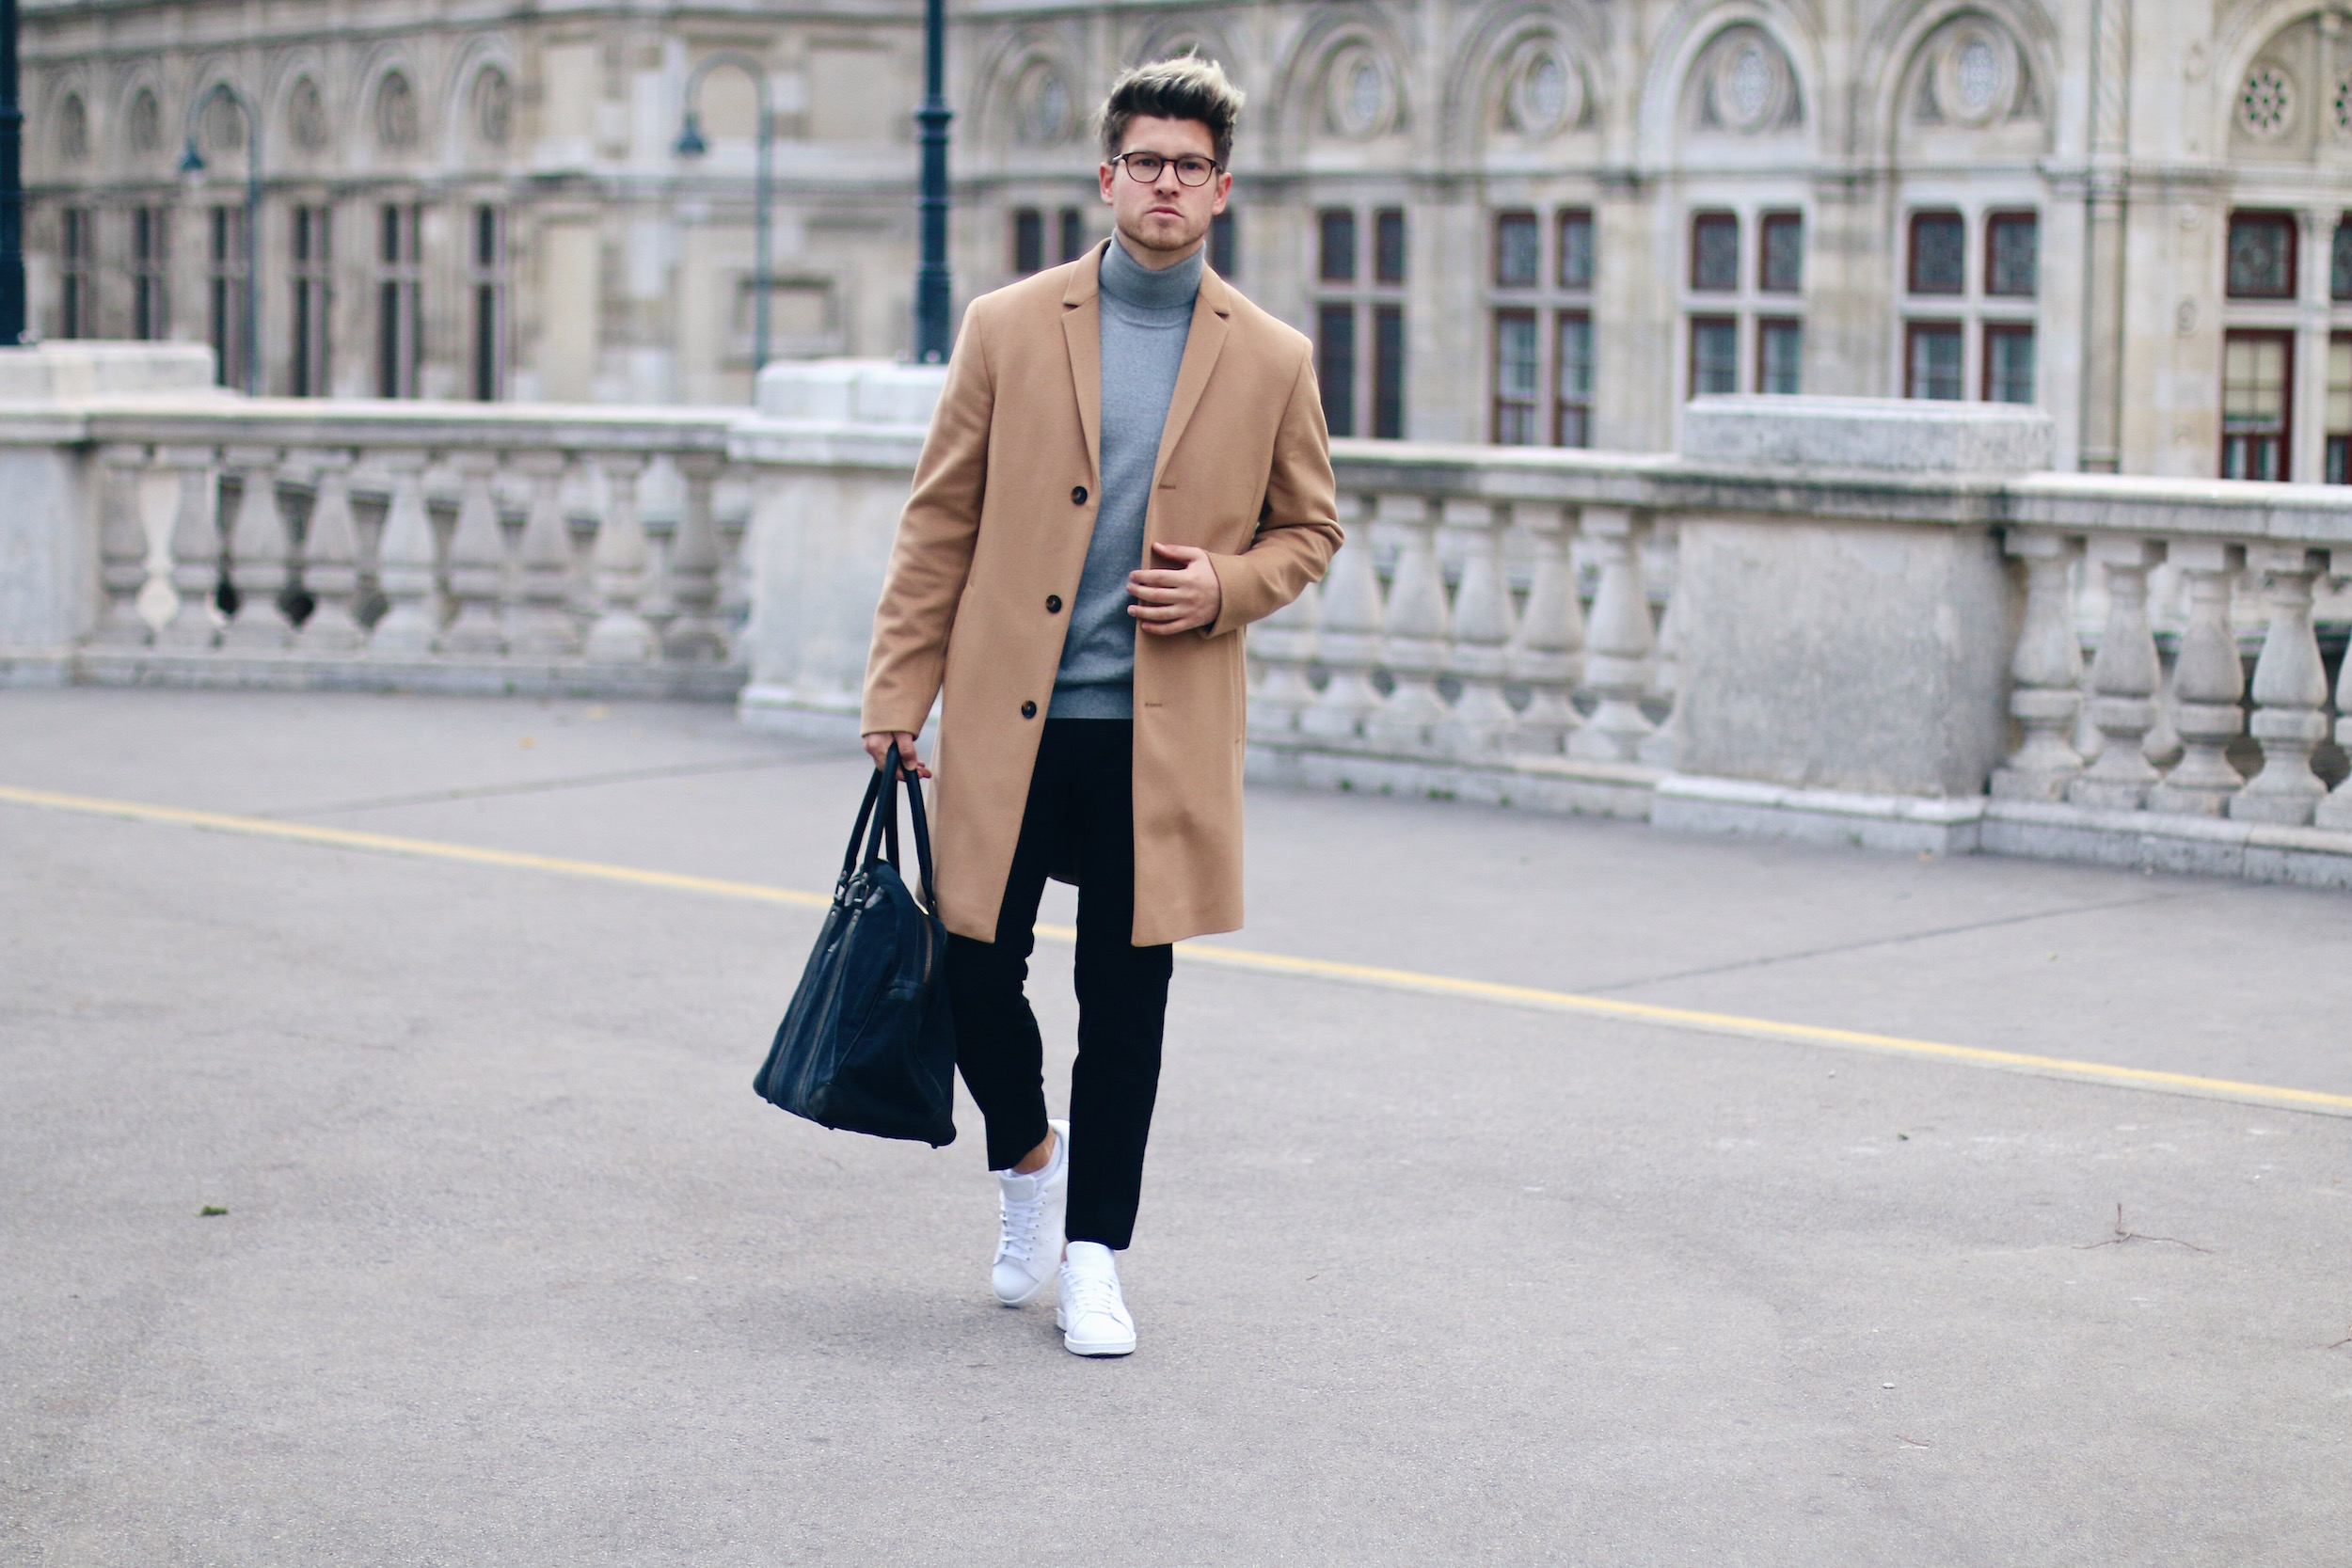 Peek & Cloppenburg Online Shop Launch Austria_Outfit Calvin Klein Camel Coat by Meanwhile in Awesometown_Austrian Mens Fashion and Lifestyle Blog 1